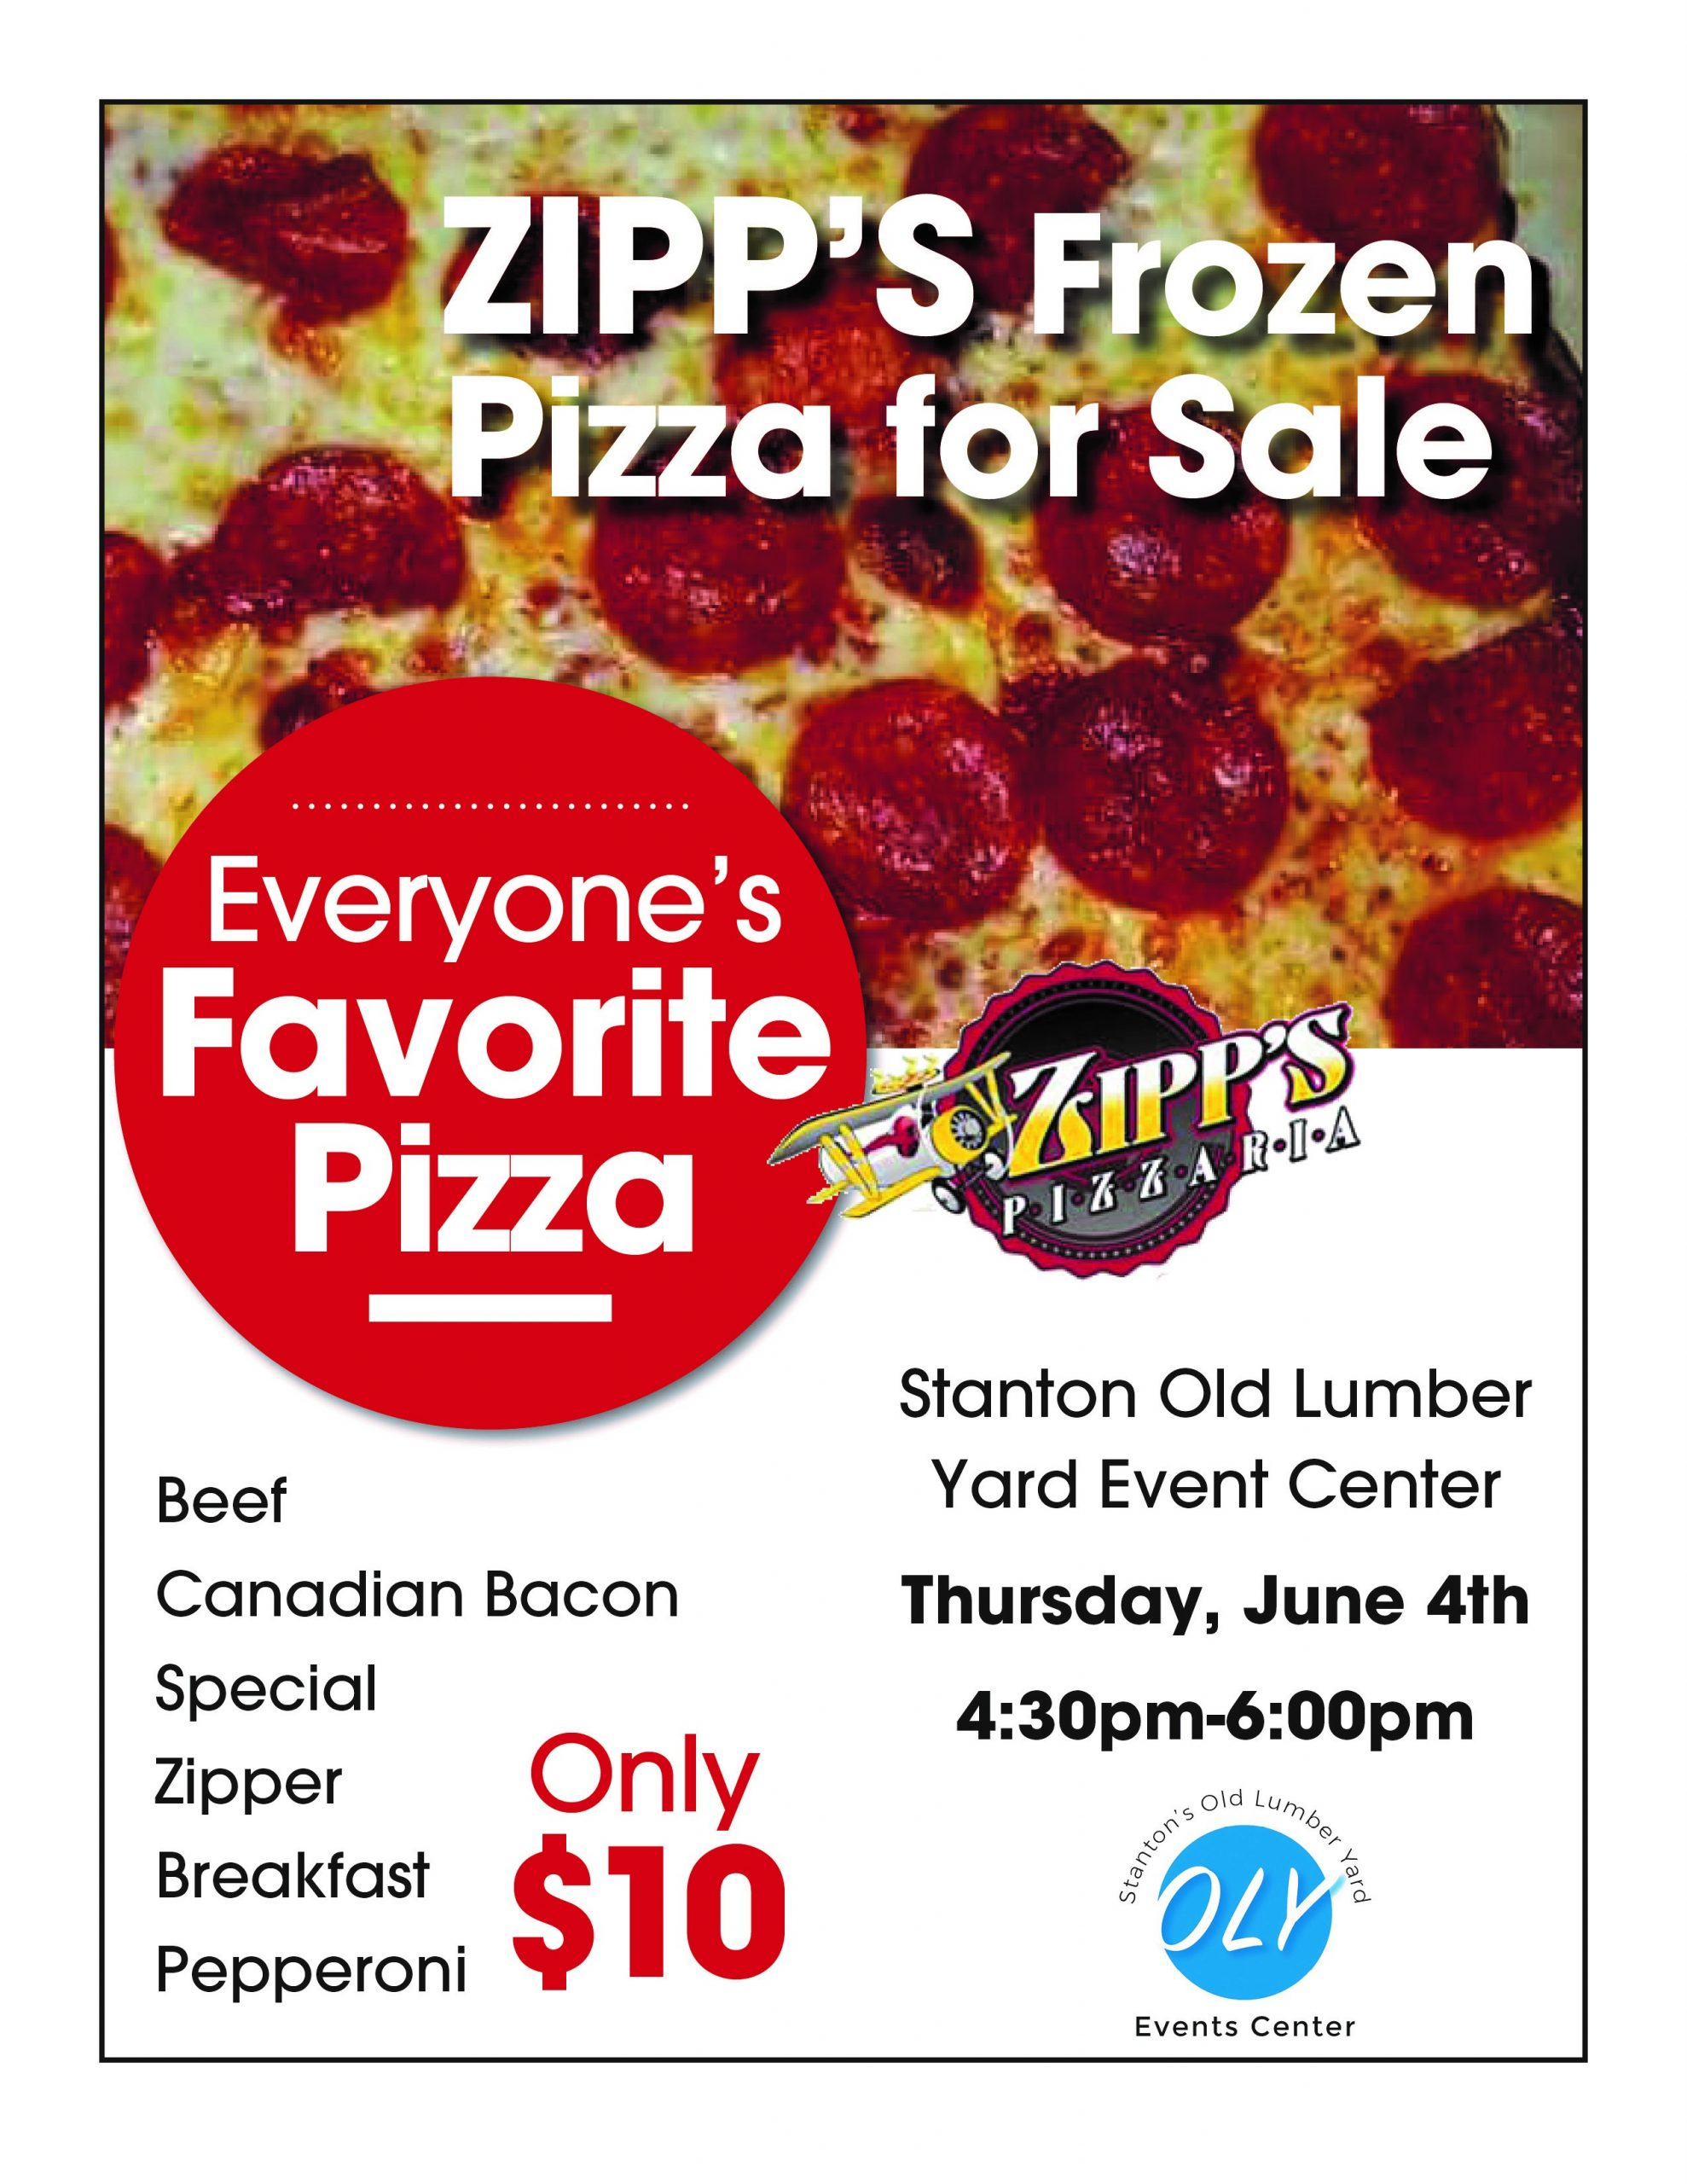 Zipp's Pizza for Sale at Stanton Old Lumber Yard Event Center